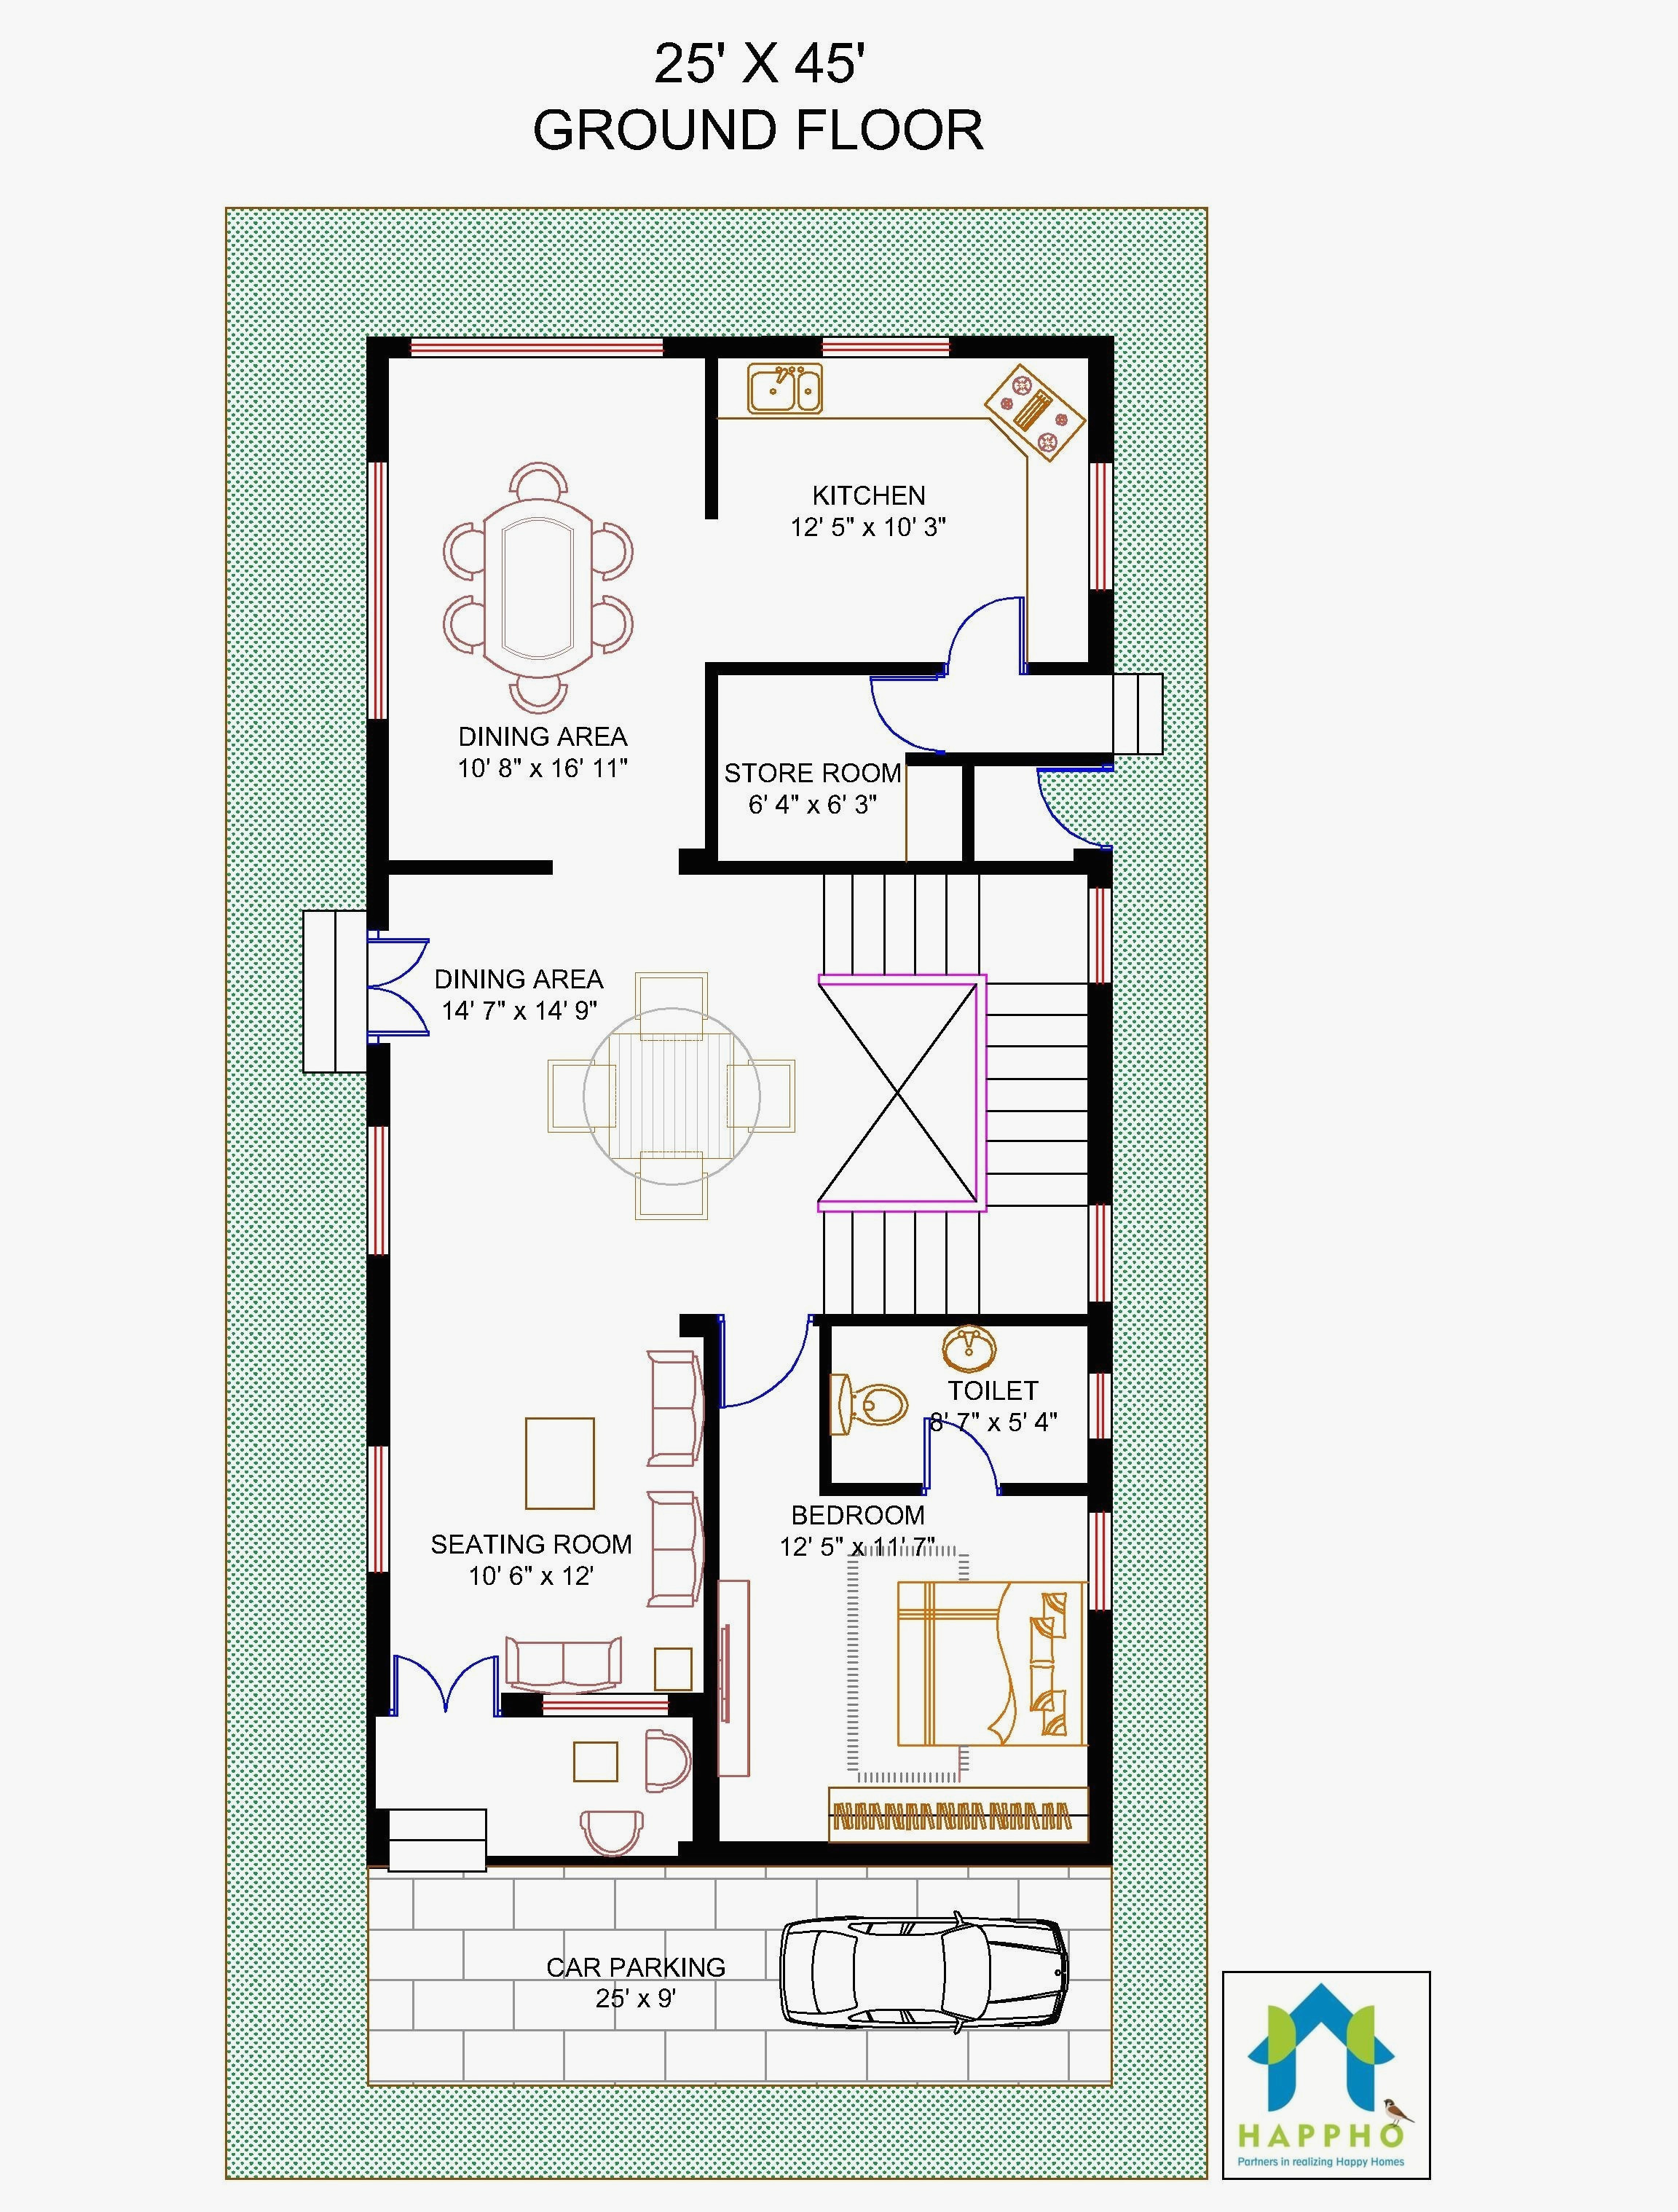 650 square foot house plans lovely 28 stylish 650 sq ft house plan design floor plan design